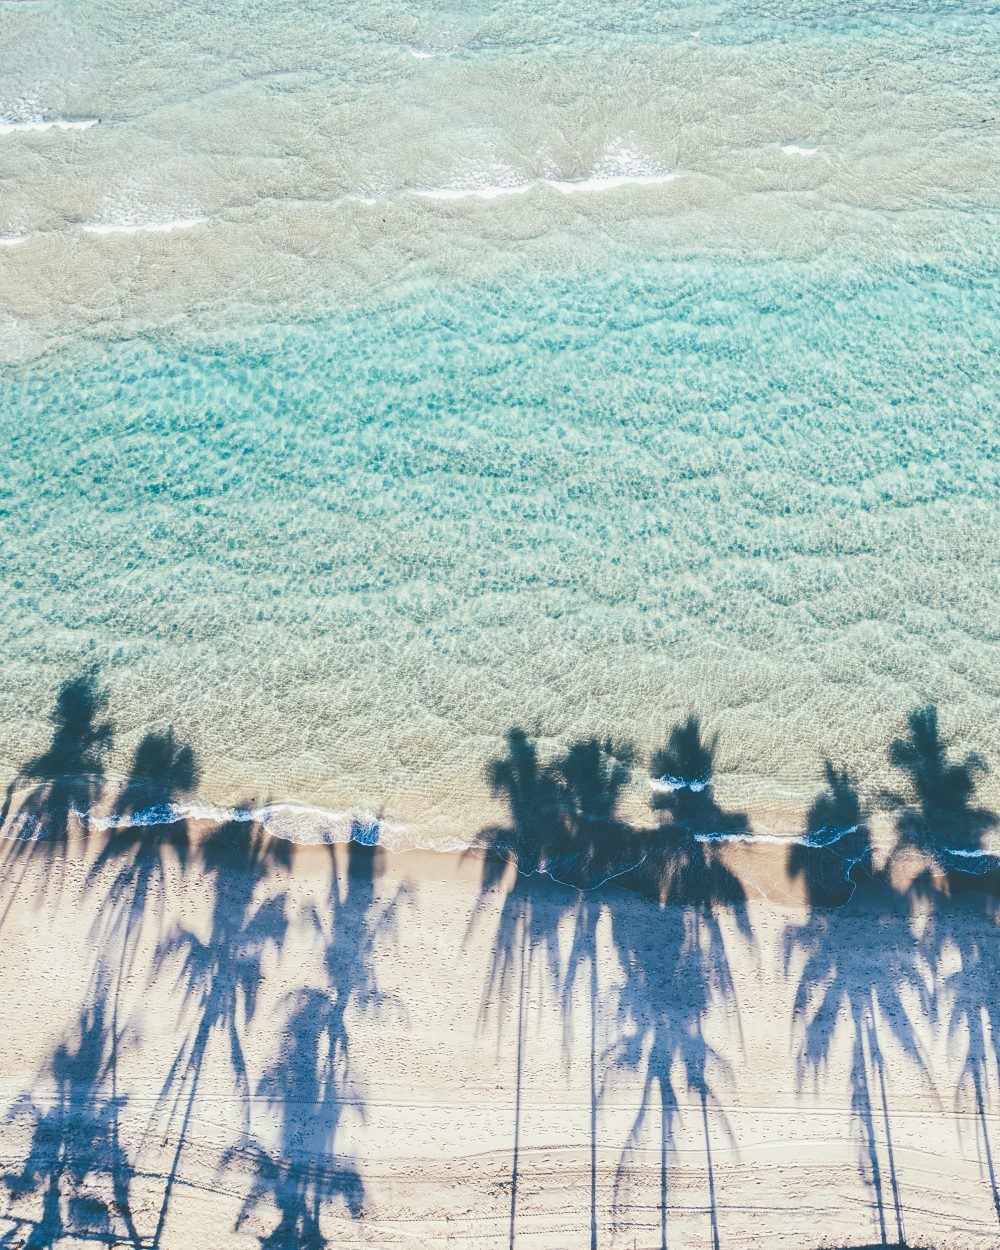 Drone image of the beach with palm trees' reflections